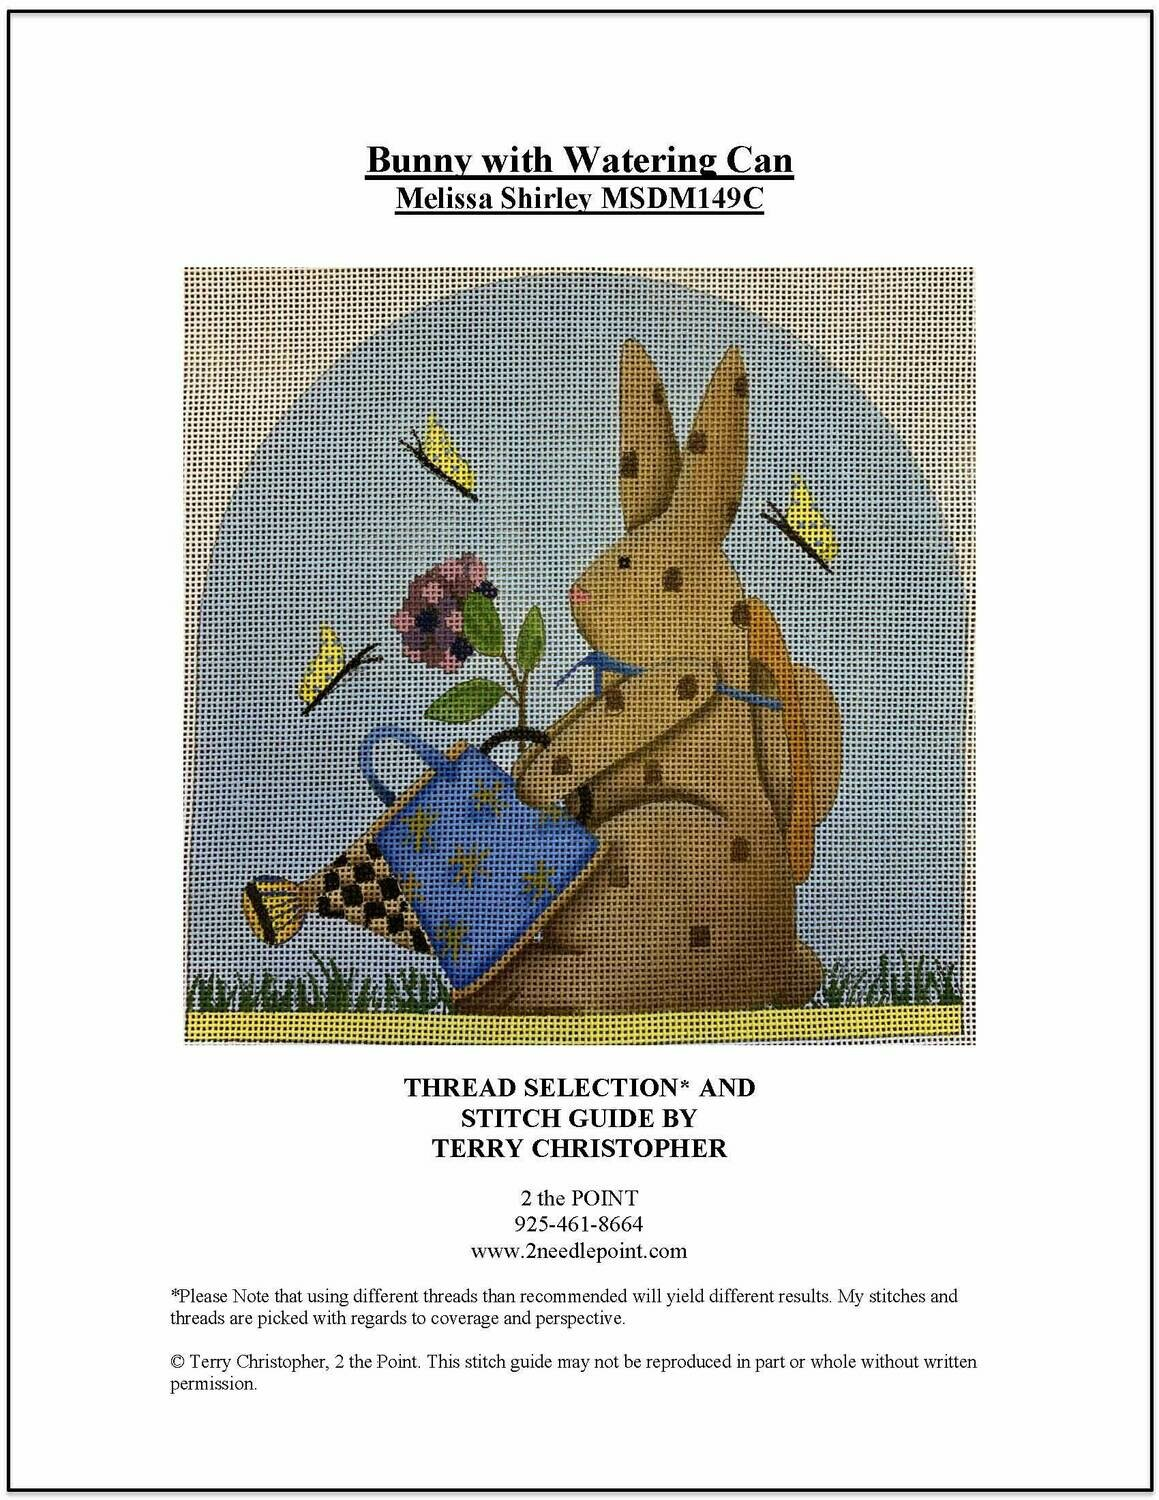 Melissa Shirley, Bunny with Watering Can MSDM149A